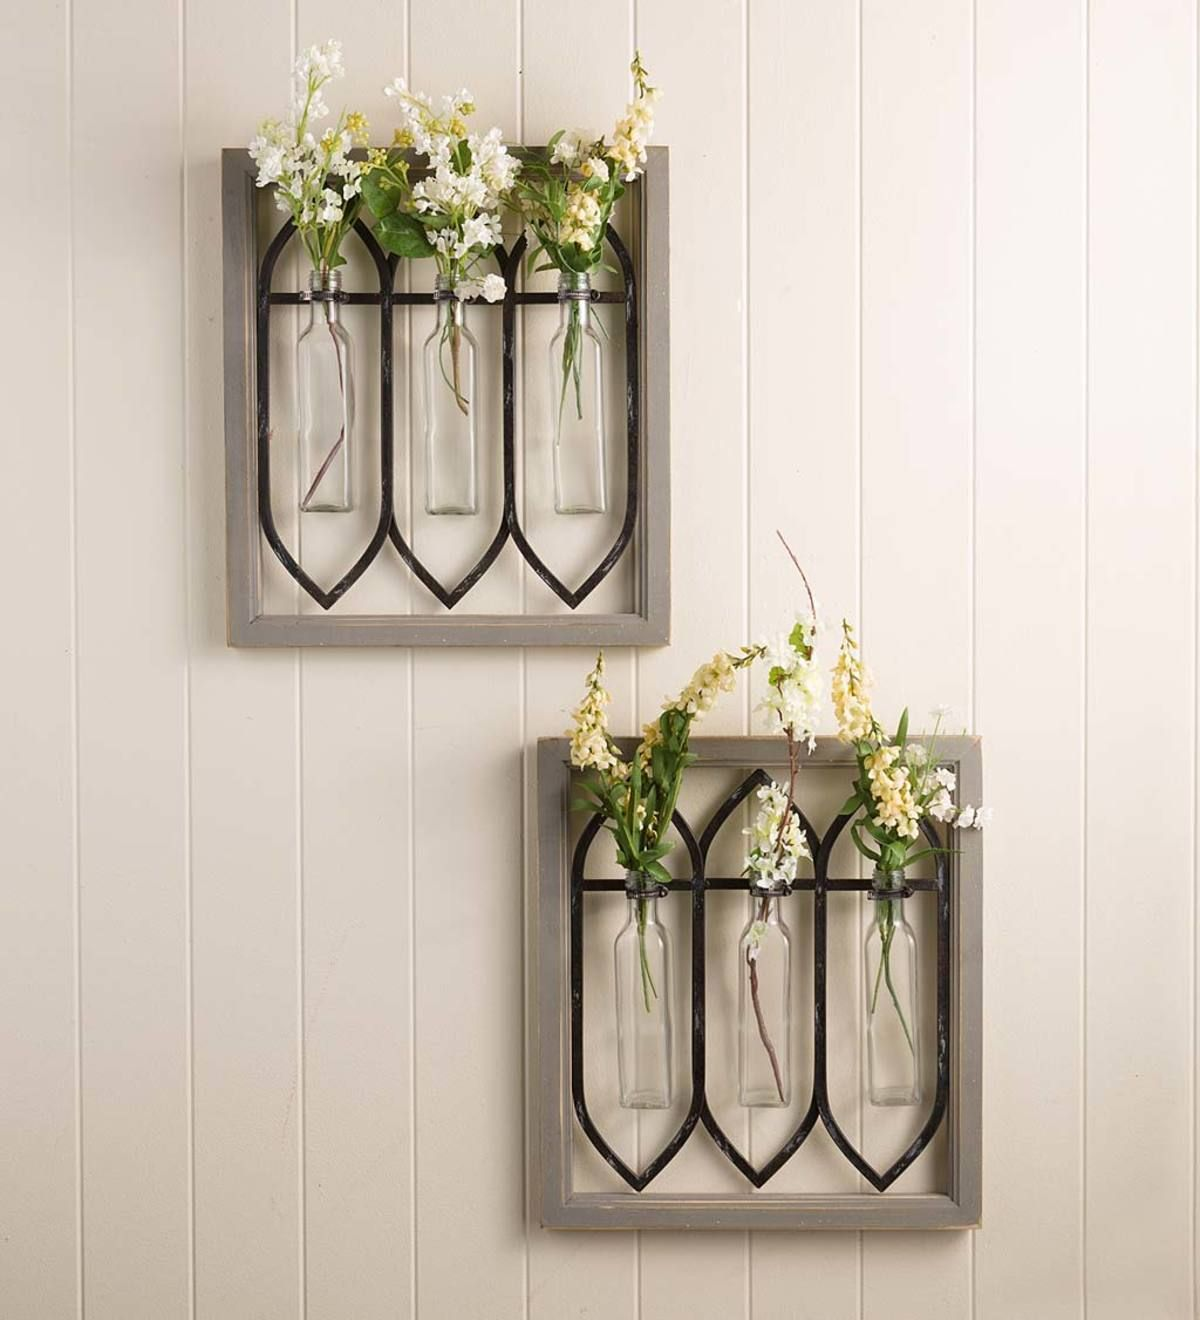 Easy Diy Metal Wall Vase Upcycle Farmhouse Style Life On